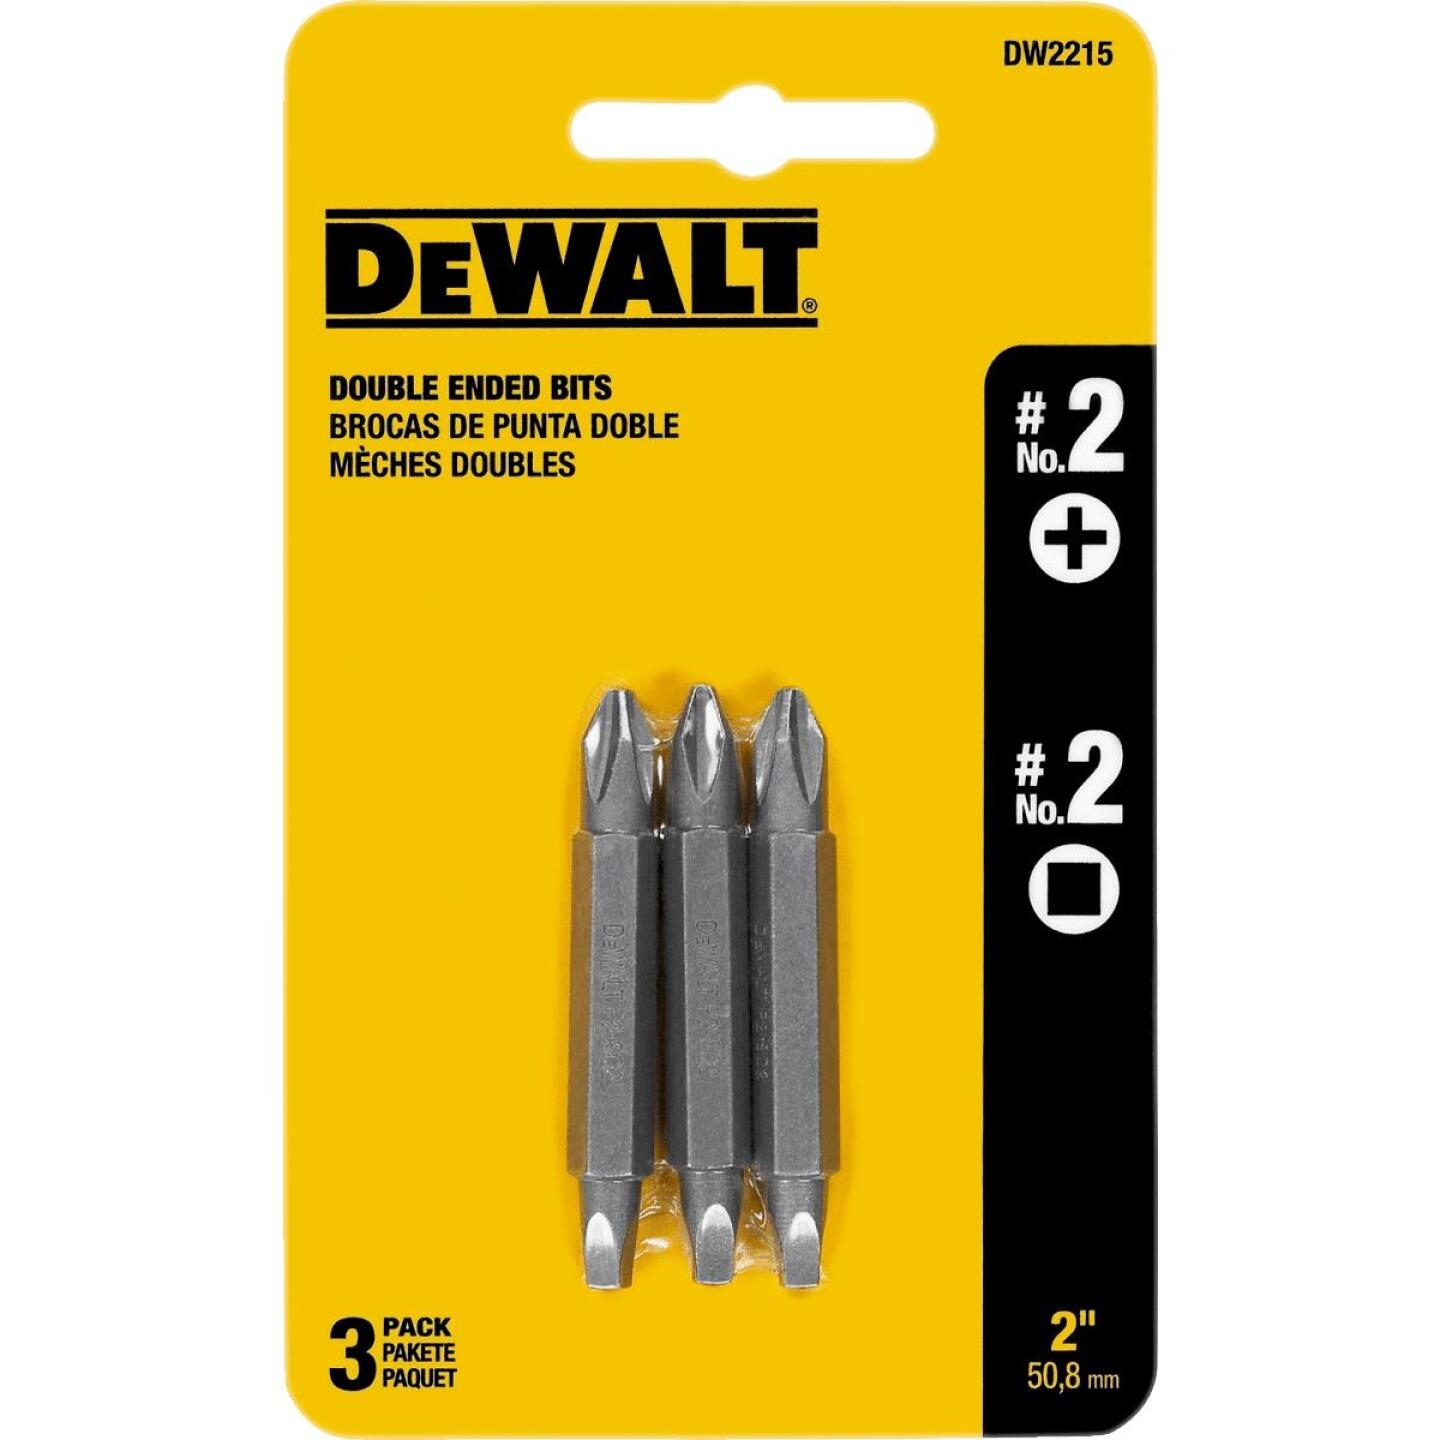 DeWalt Phillips #2 Square Recess Double-End Screwdriver Bit Image 2